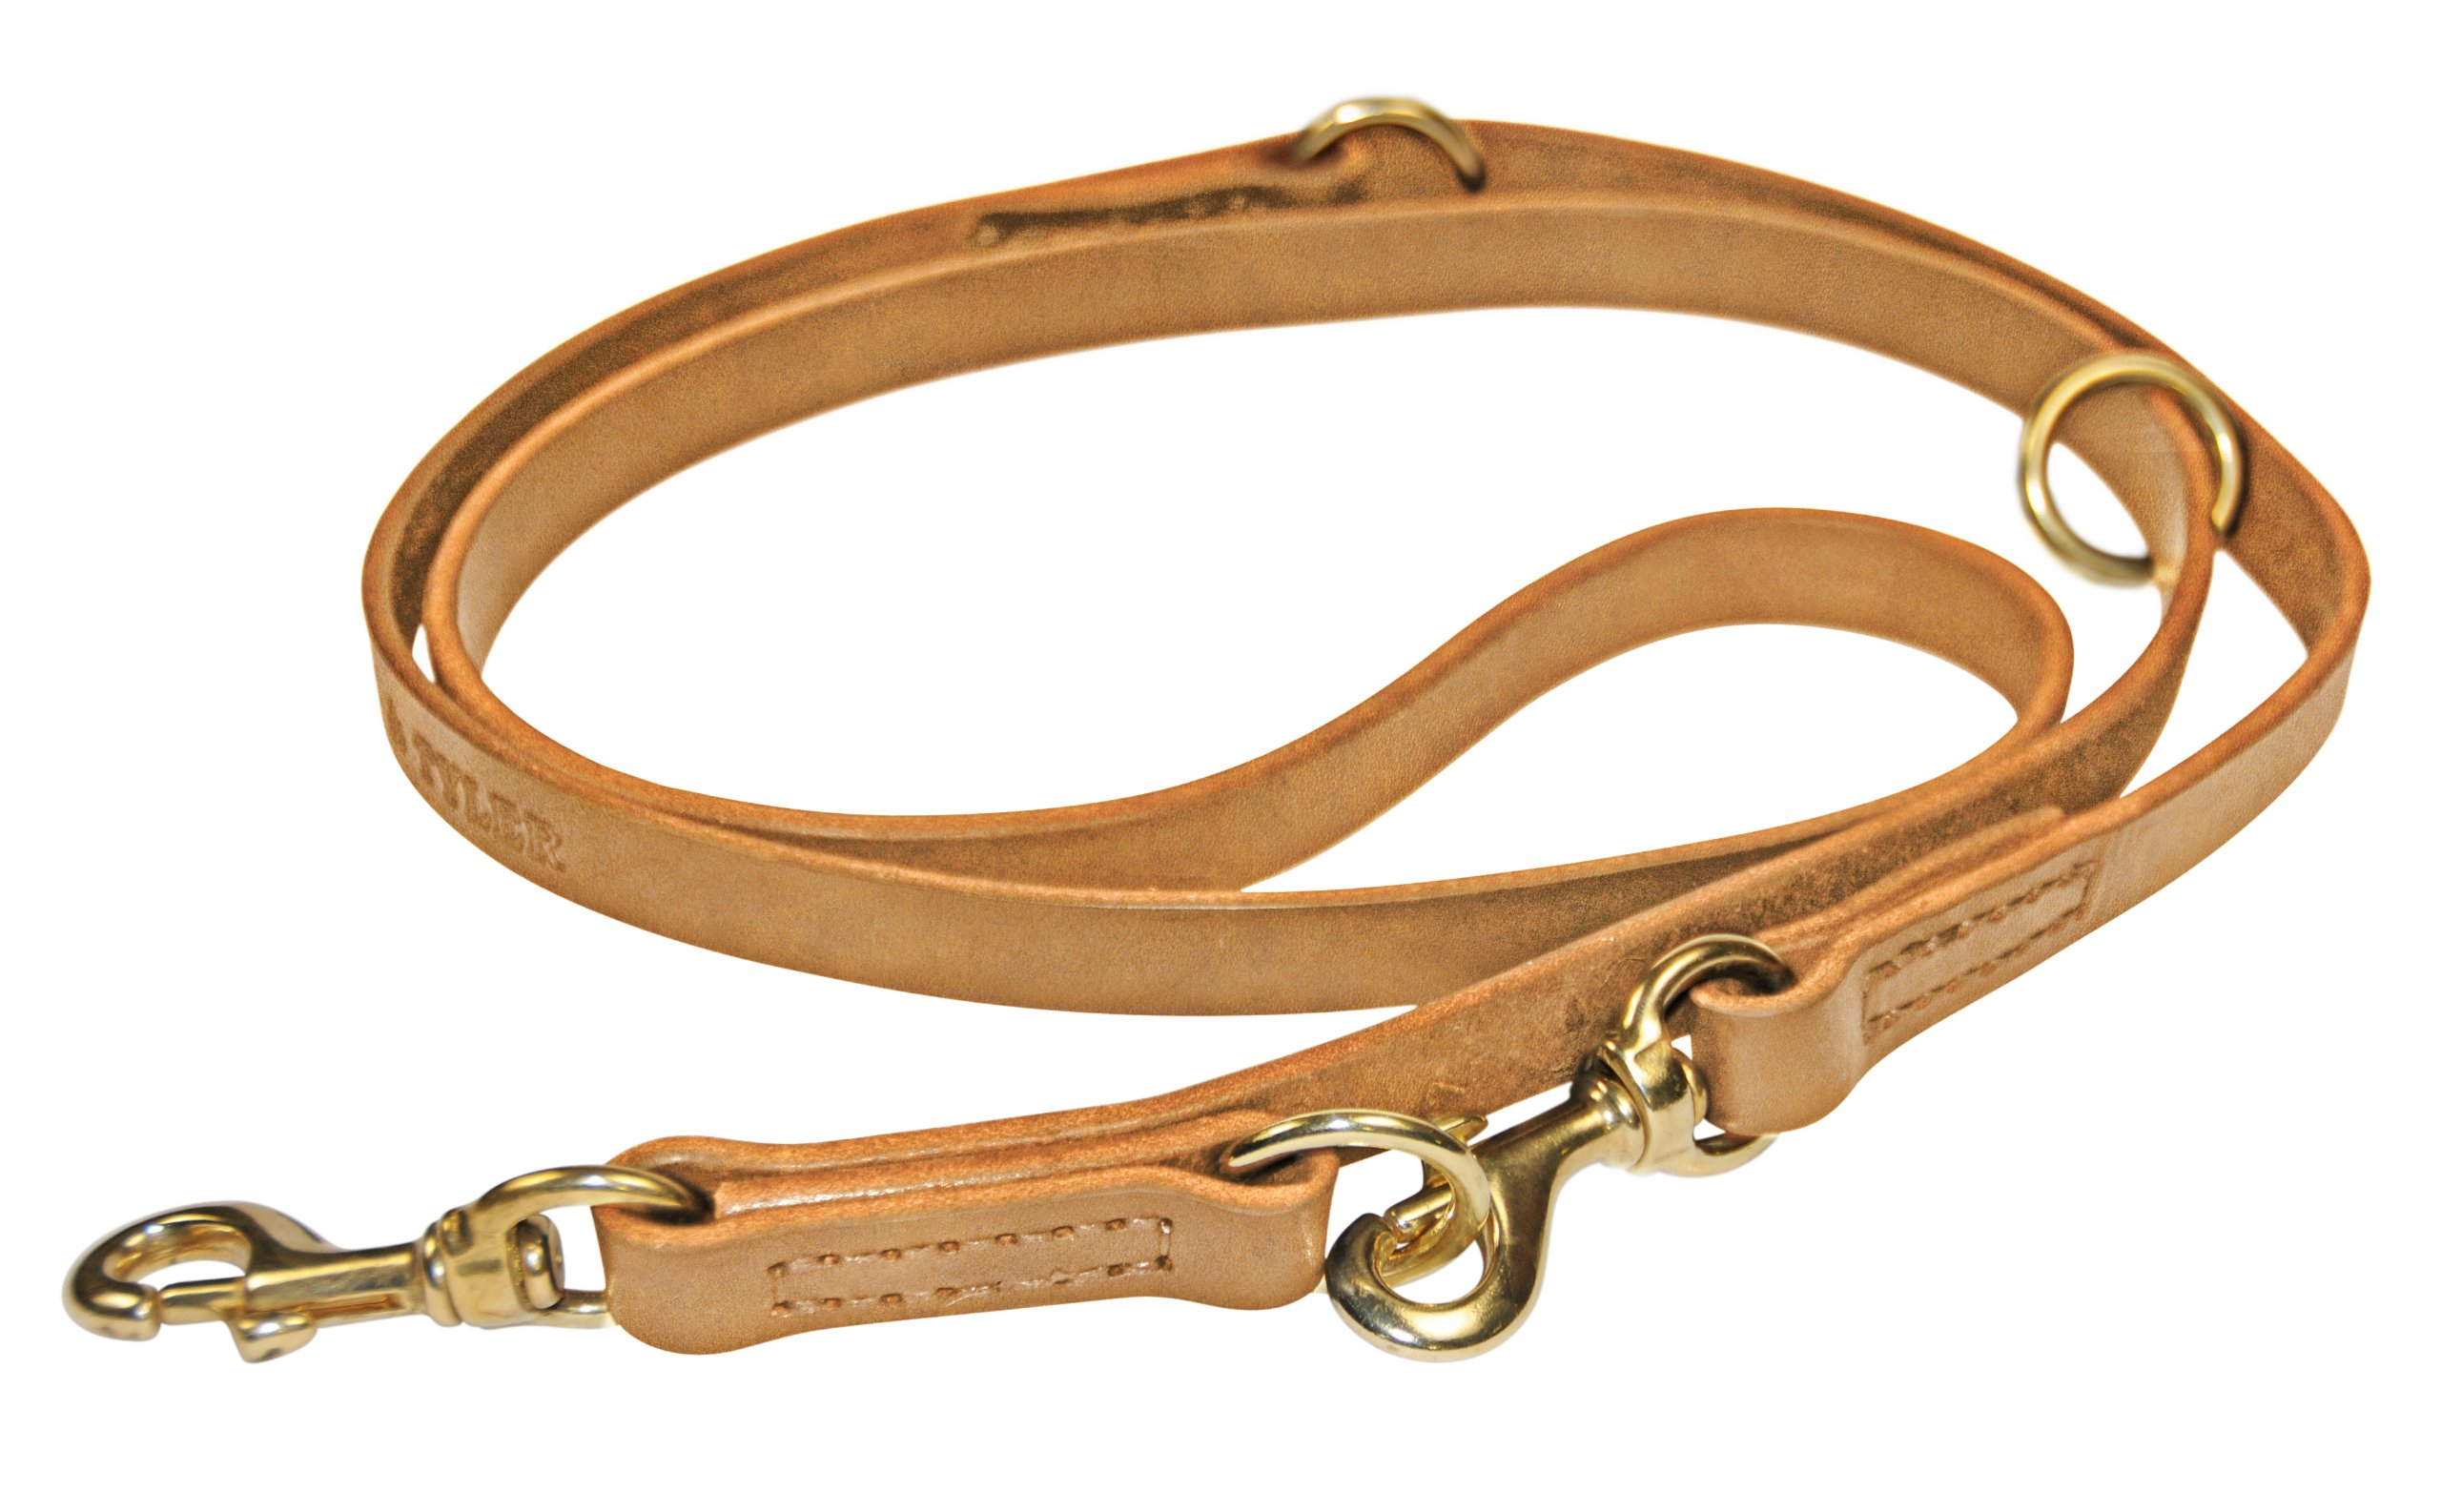 Dean & Tyler Simple Pleasure Multifunctional Dog Leash with Solid Brass Hardware, 5-Feet by 3/4-Inch, Tan